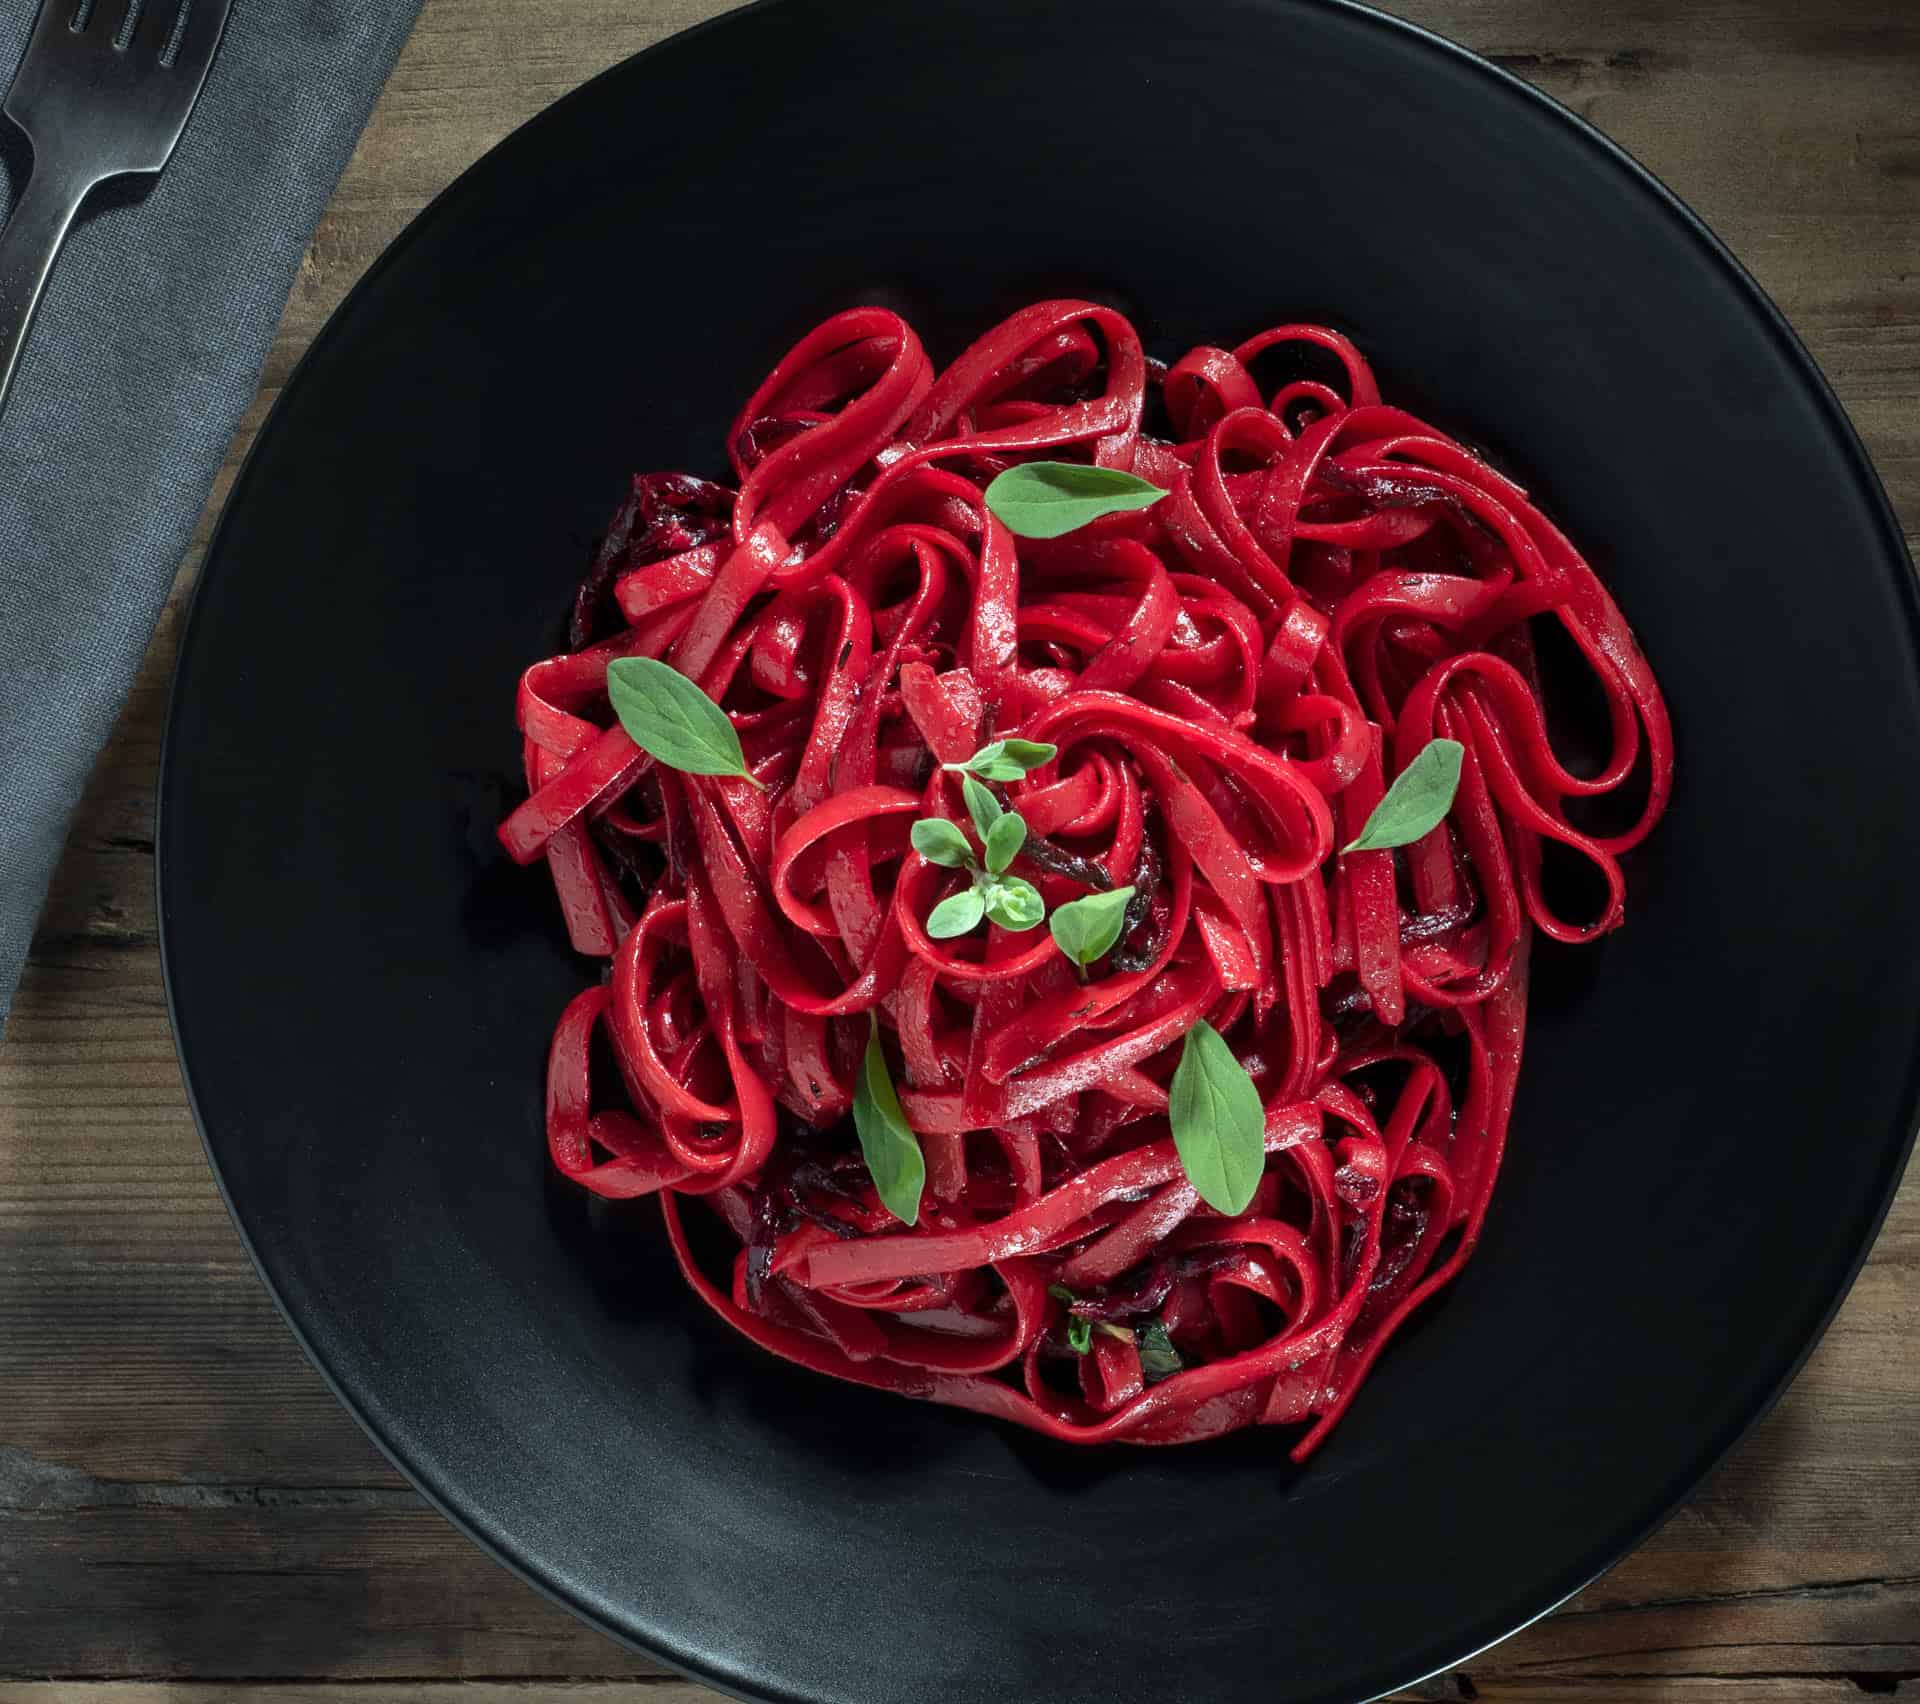 Red beet pasta on wood background.